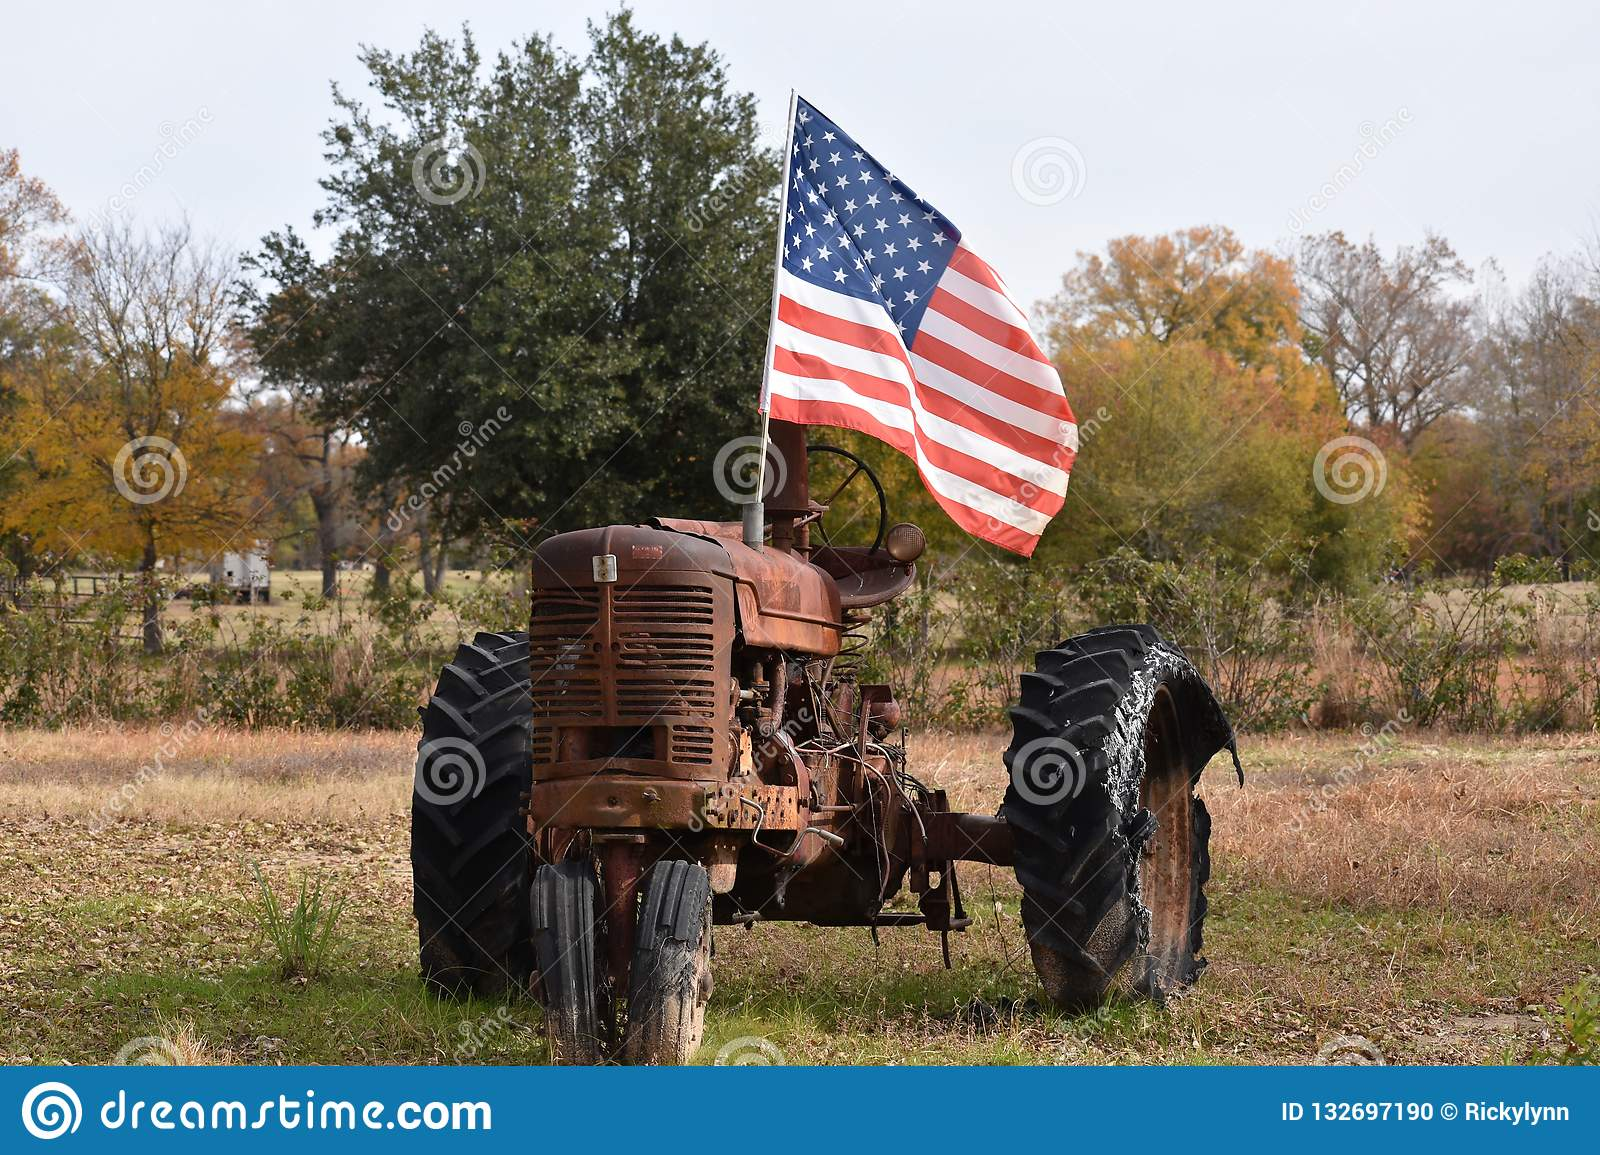 Flag And Old Tractor In Gilmer Texas Nov 25 2018 Stock Photo